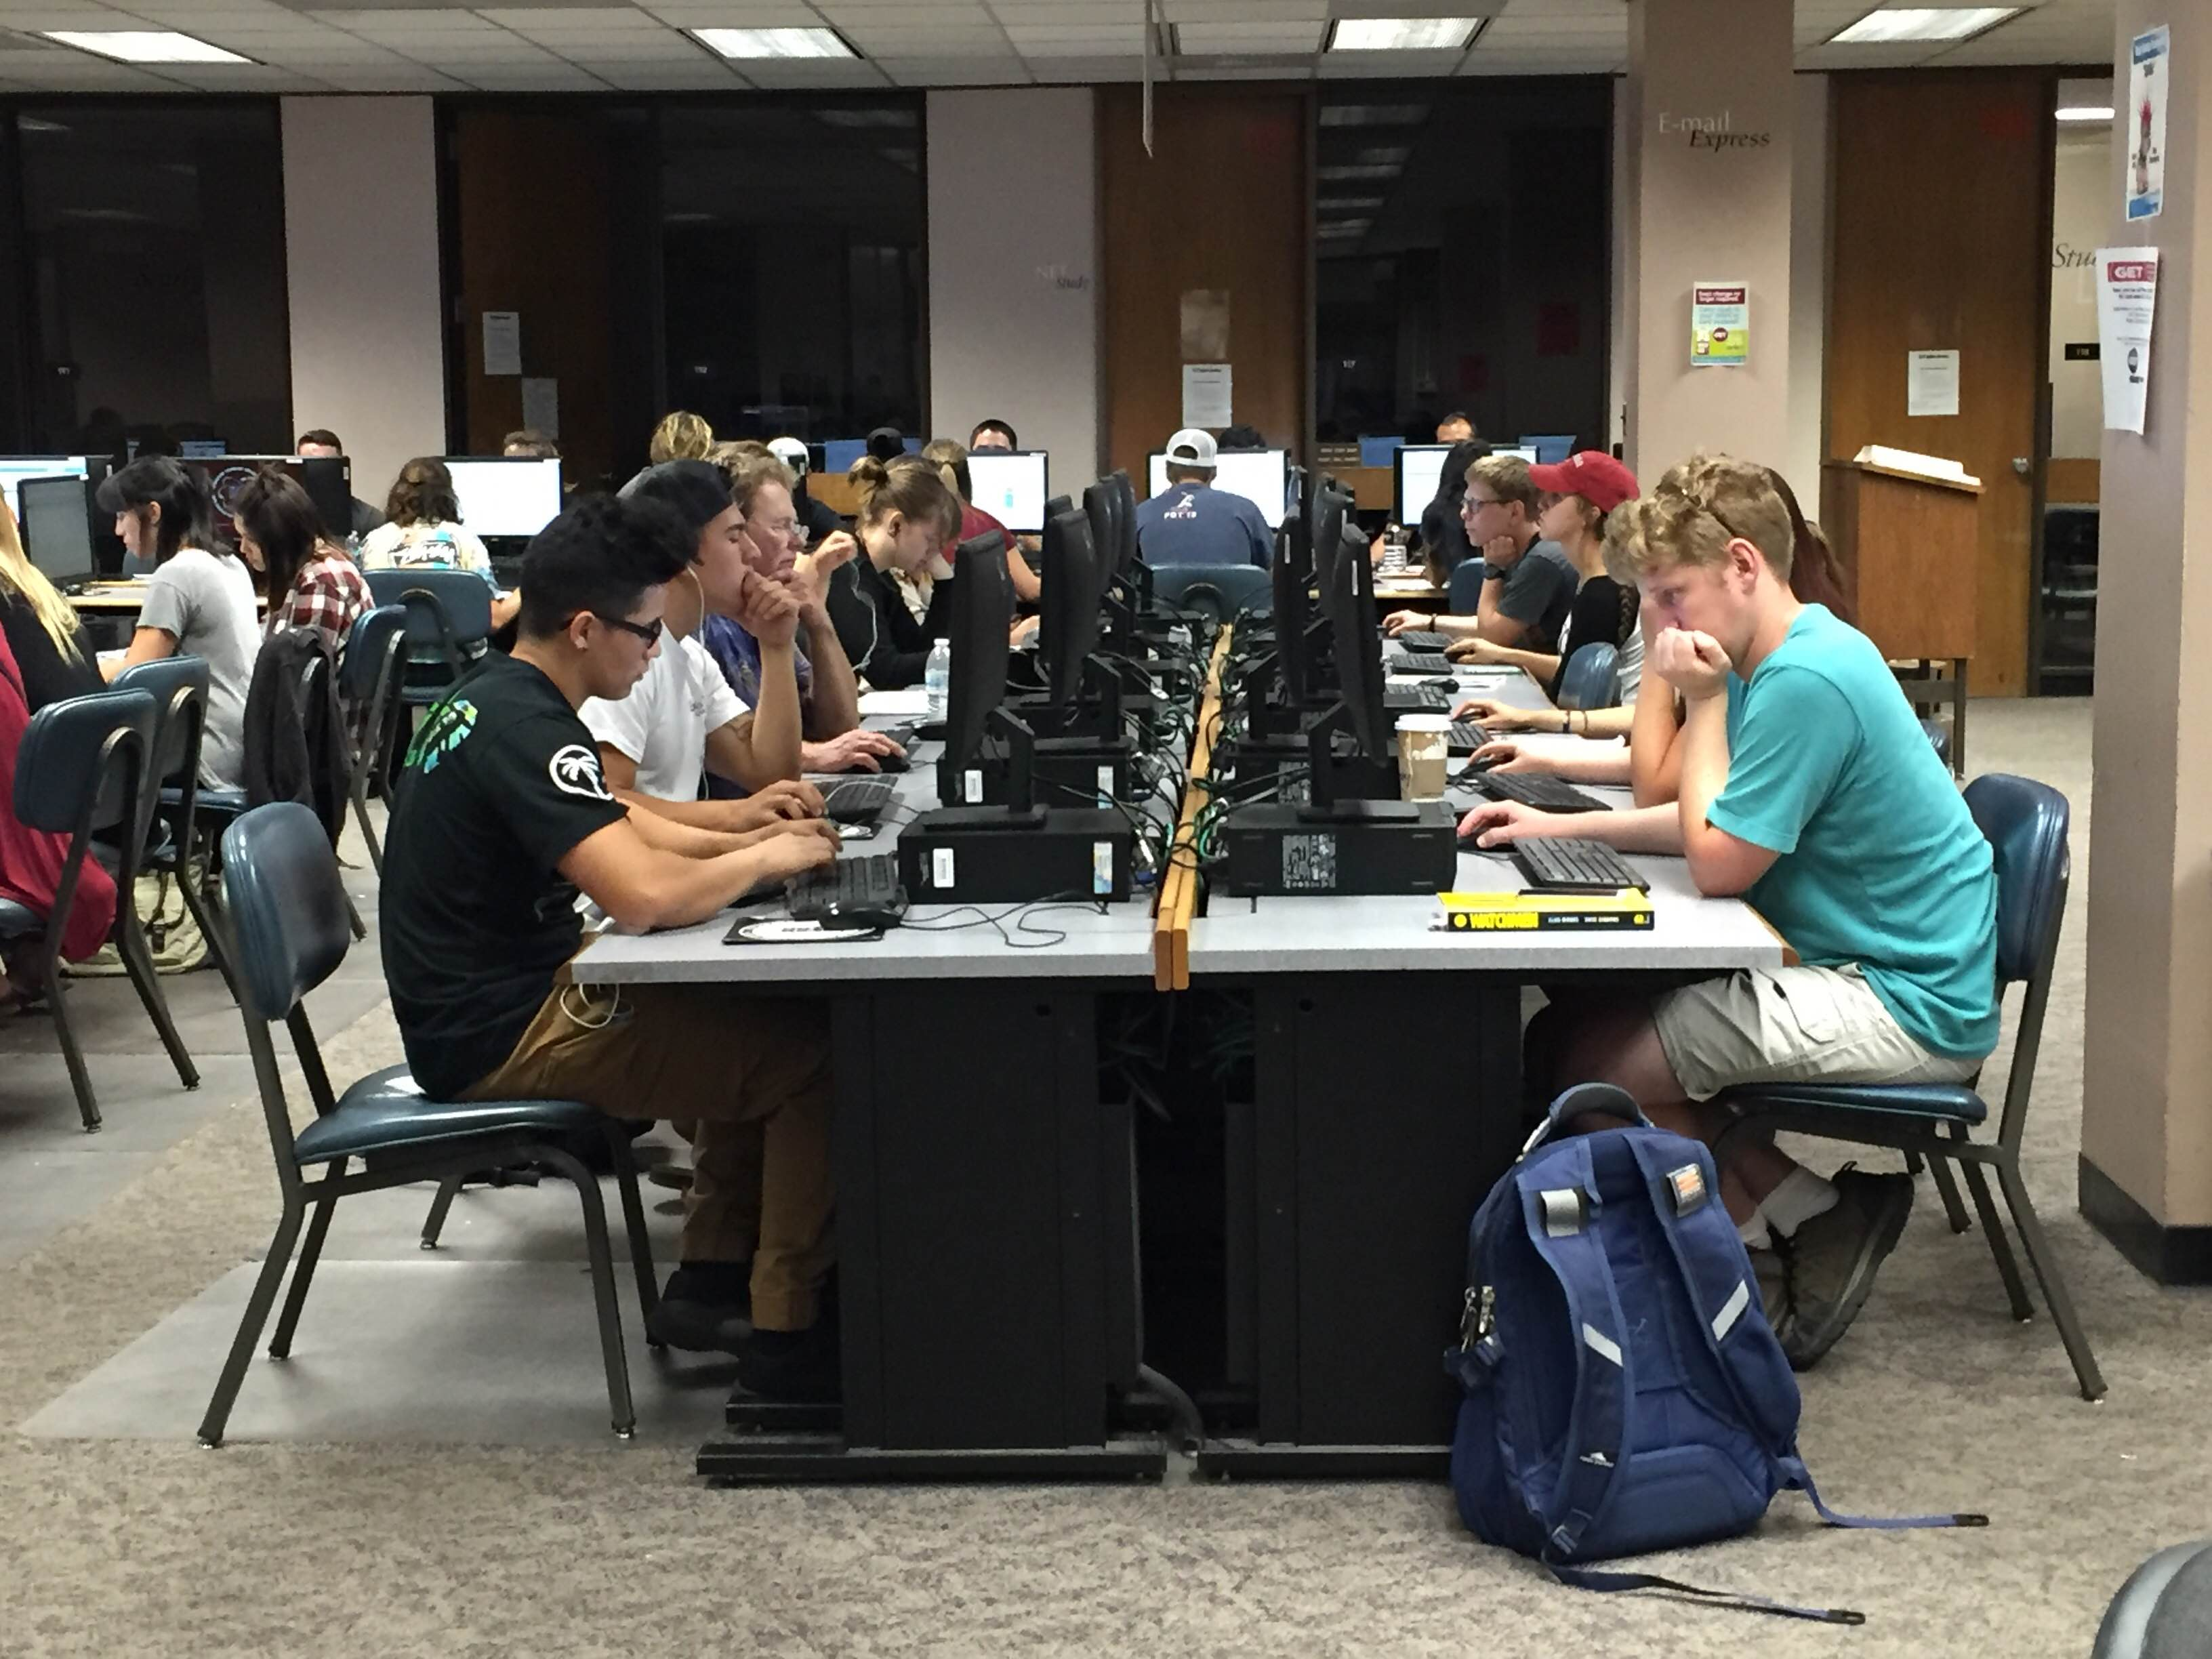 Students utilizing the Meriam Library computer lab Photo credit: Kyla Linville